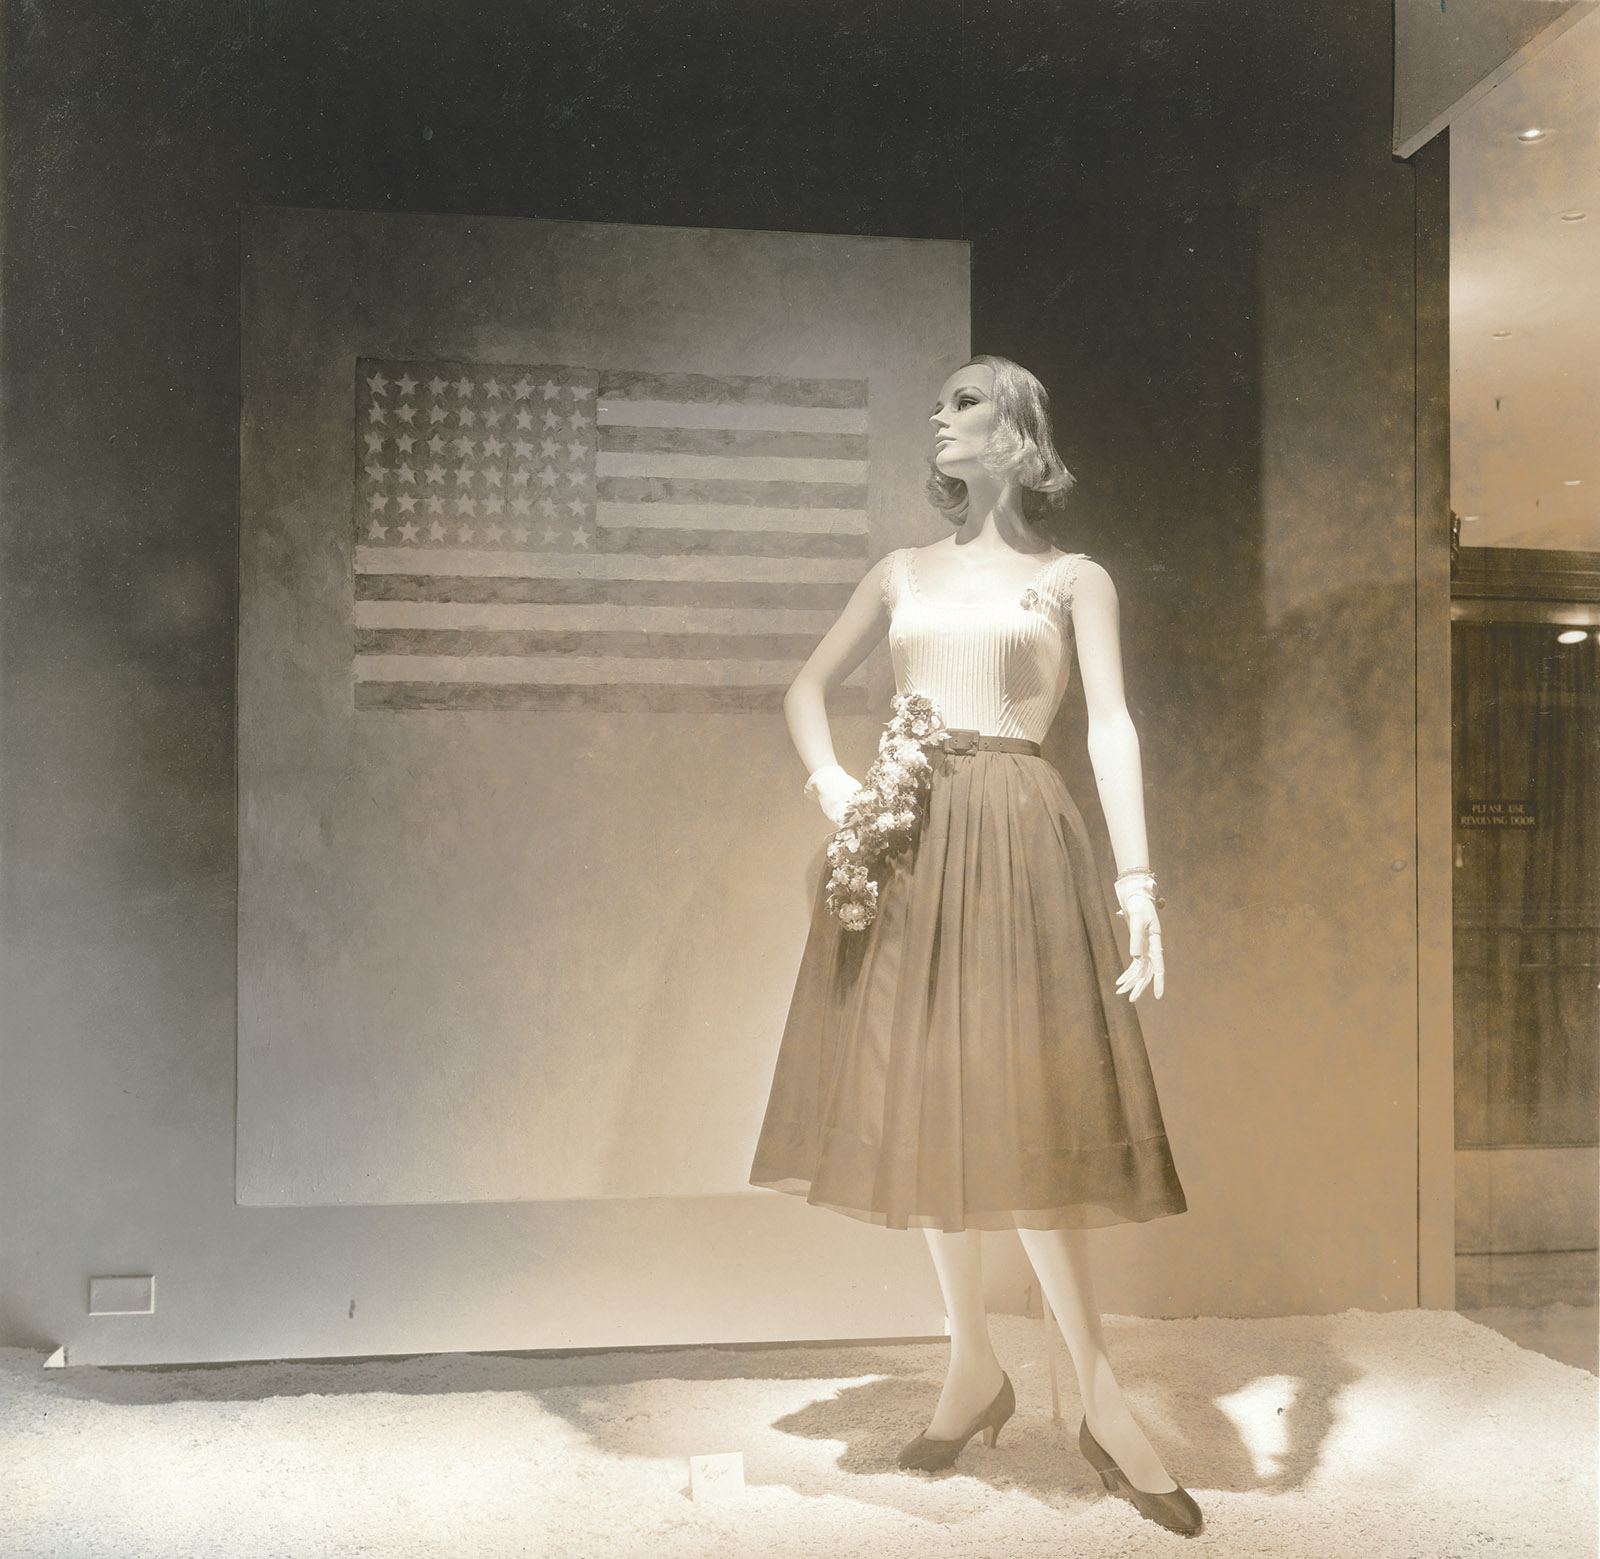 A window display at the Bonwit Teller department store featuring Flag on Orange Field (1957) by Jasper Johns, New York City, 1957